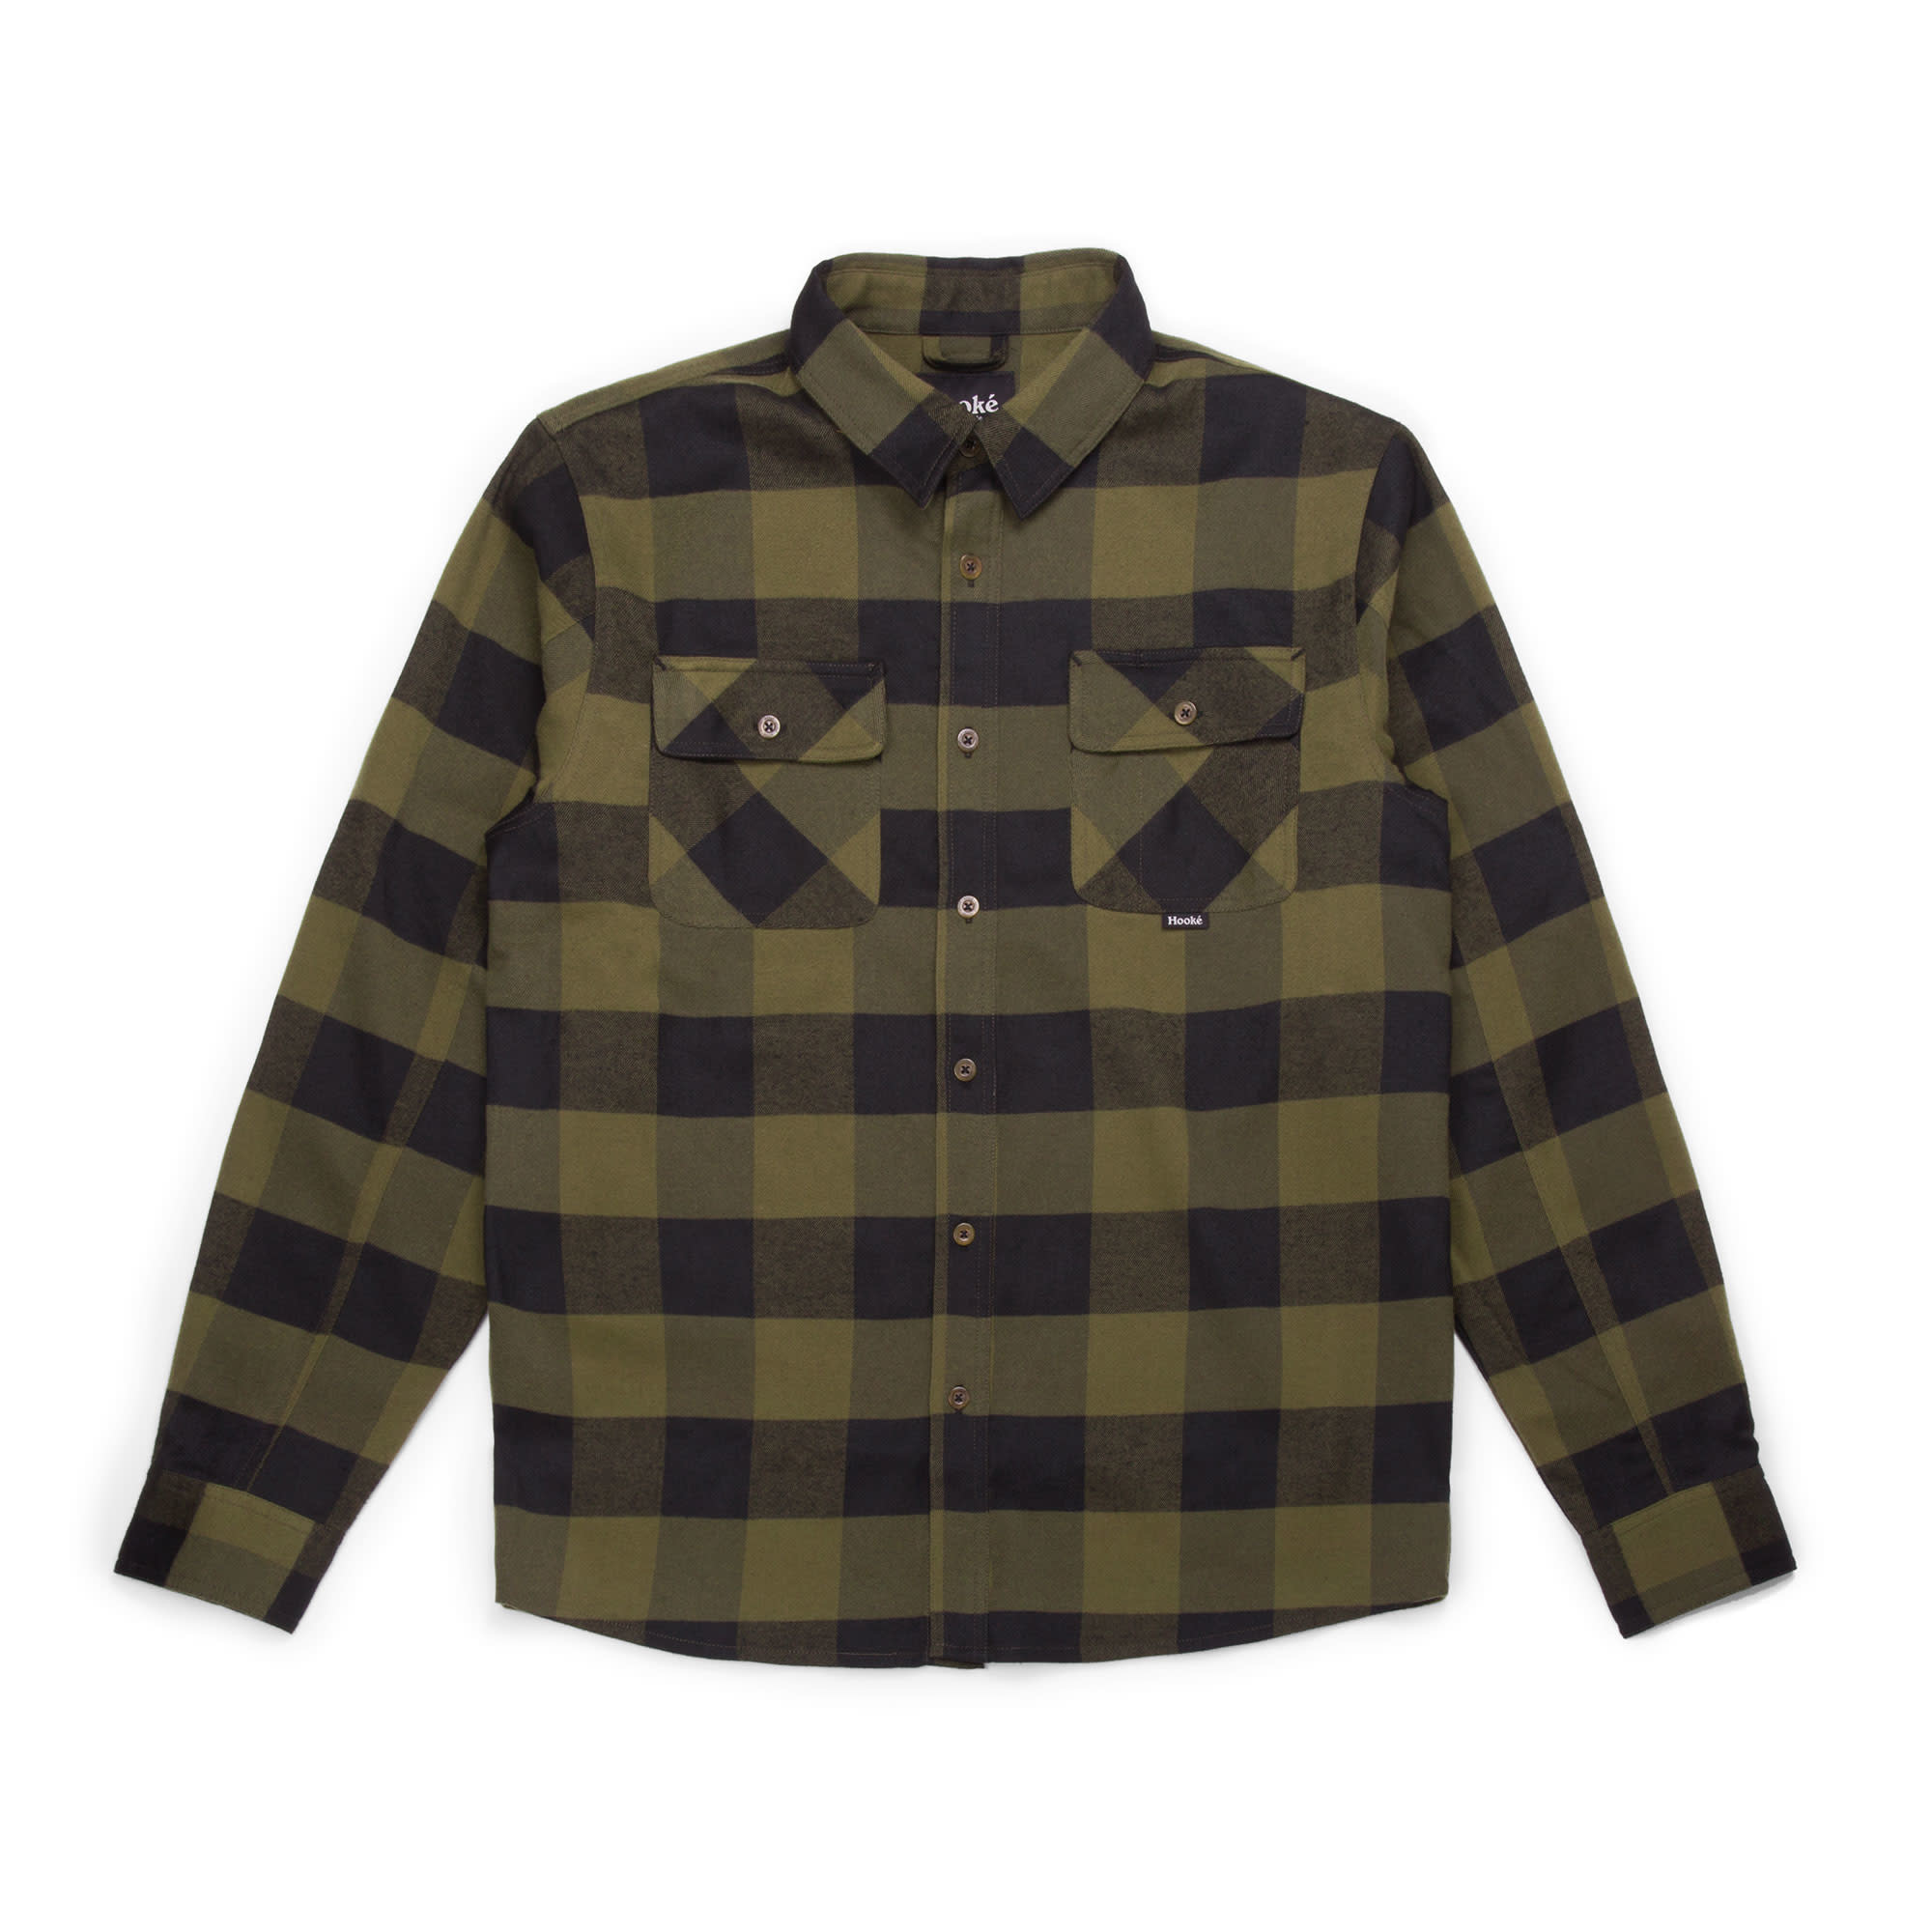 Canadian Flannel Shirt Military Green & Black Plaid